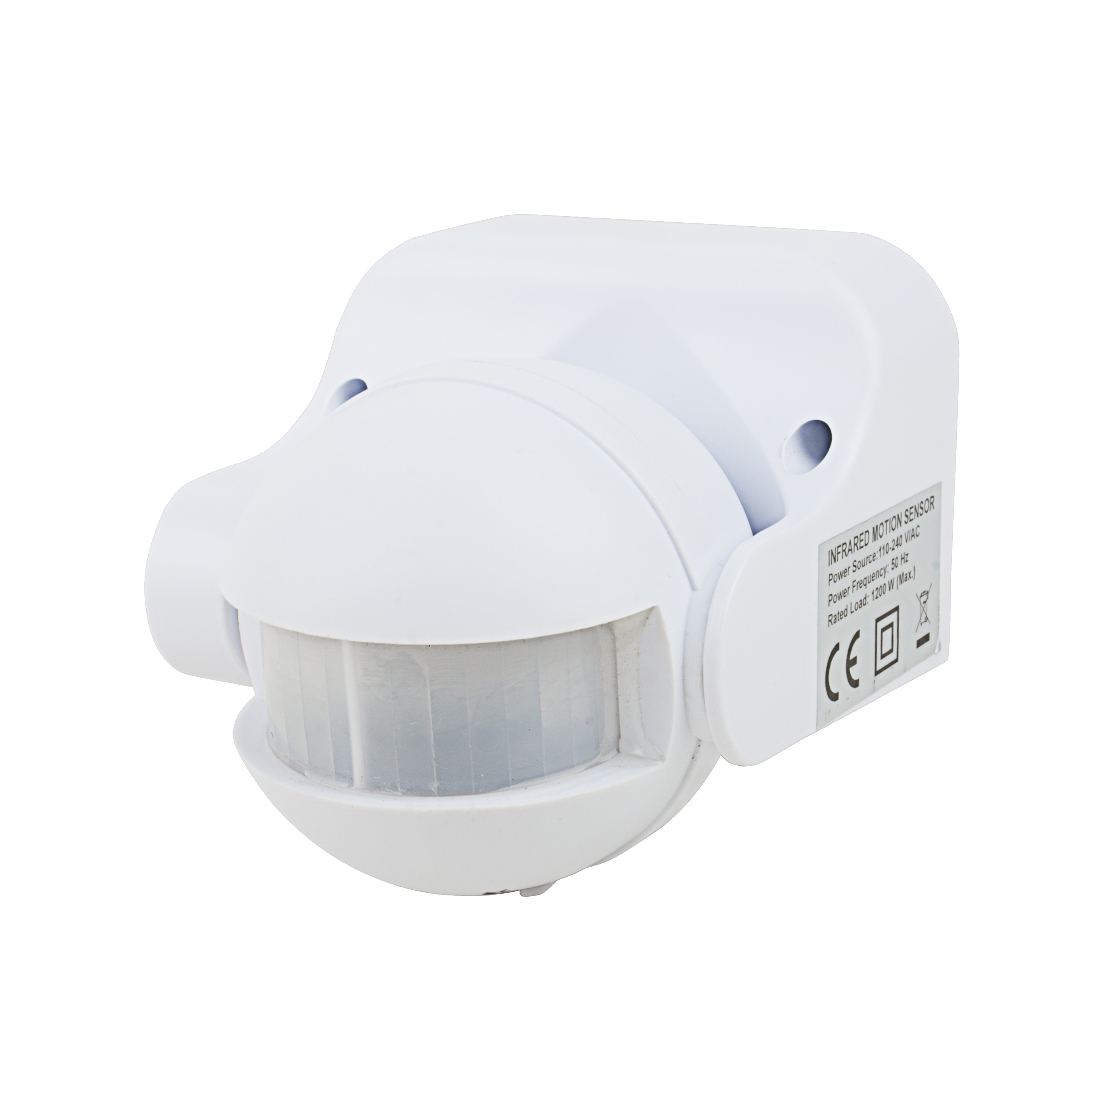 AC110V-240V Outdoor Human Body Infrared Detector Motion Sensor Switch White